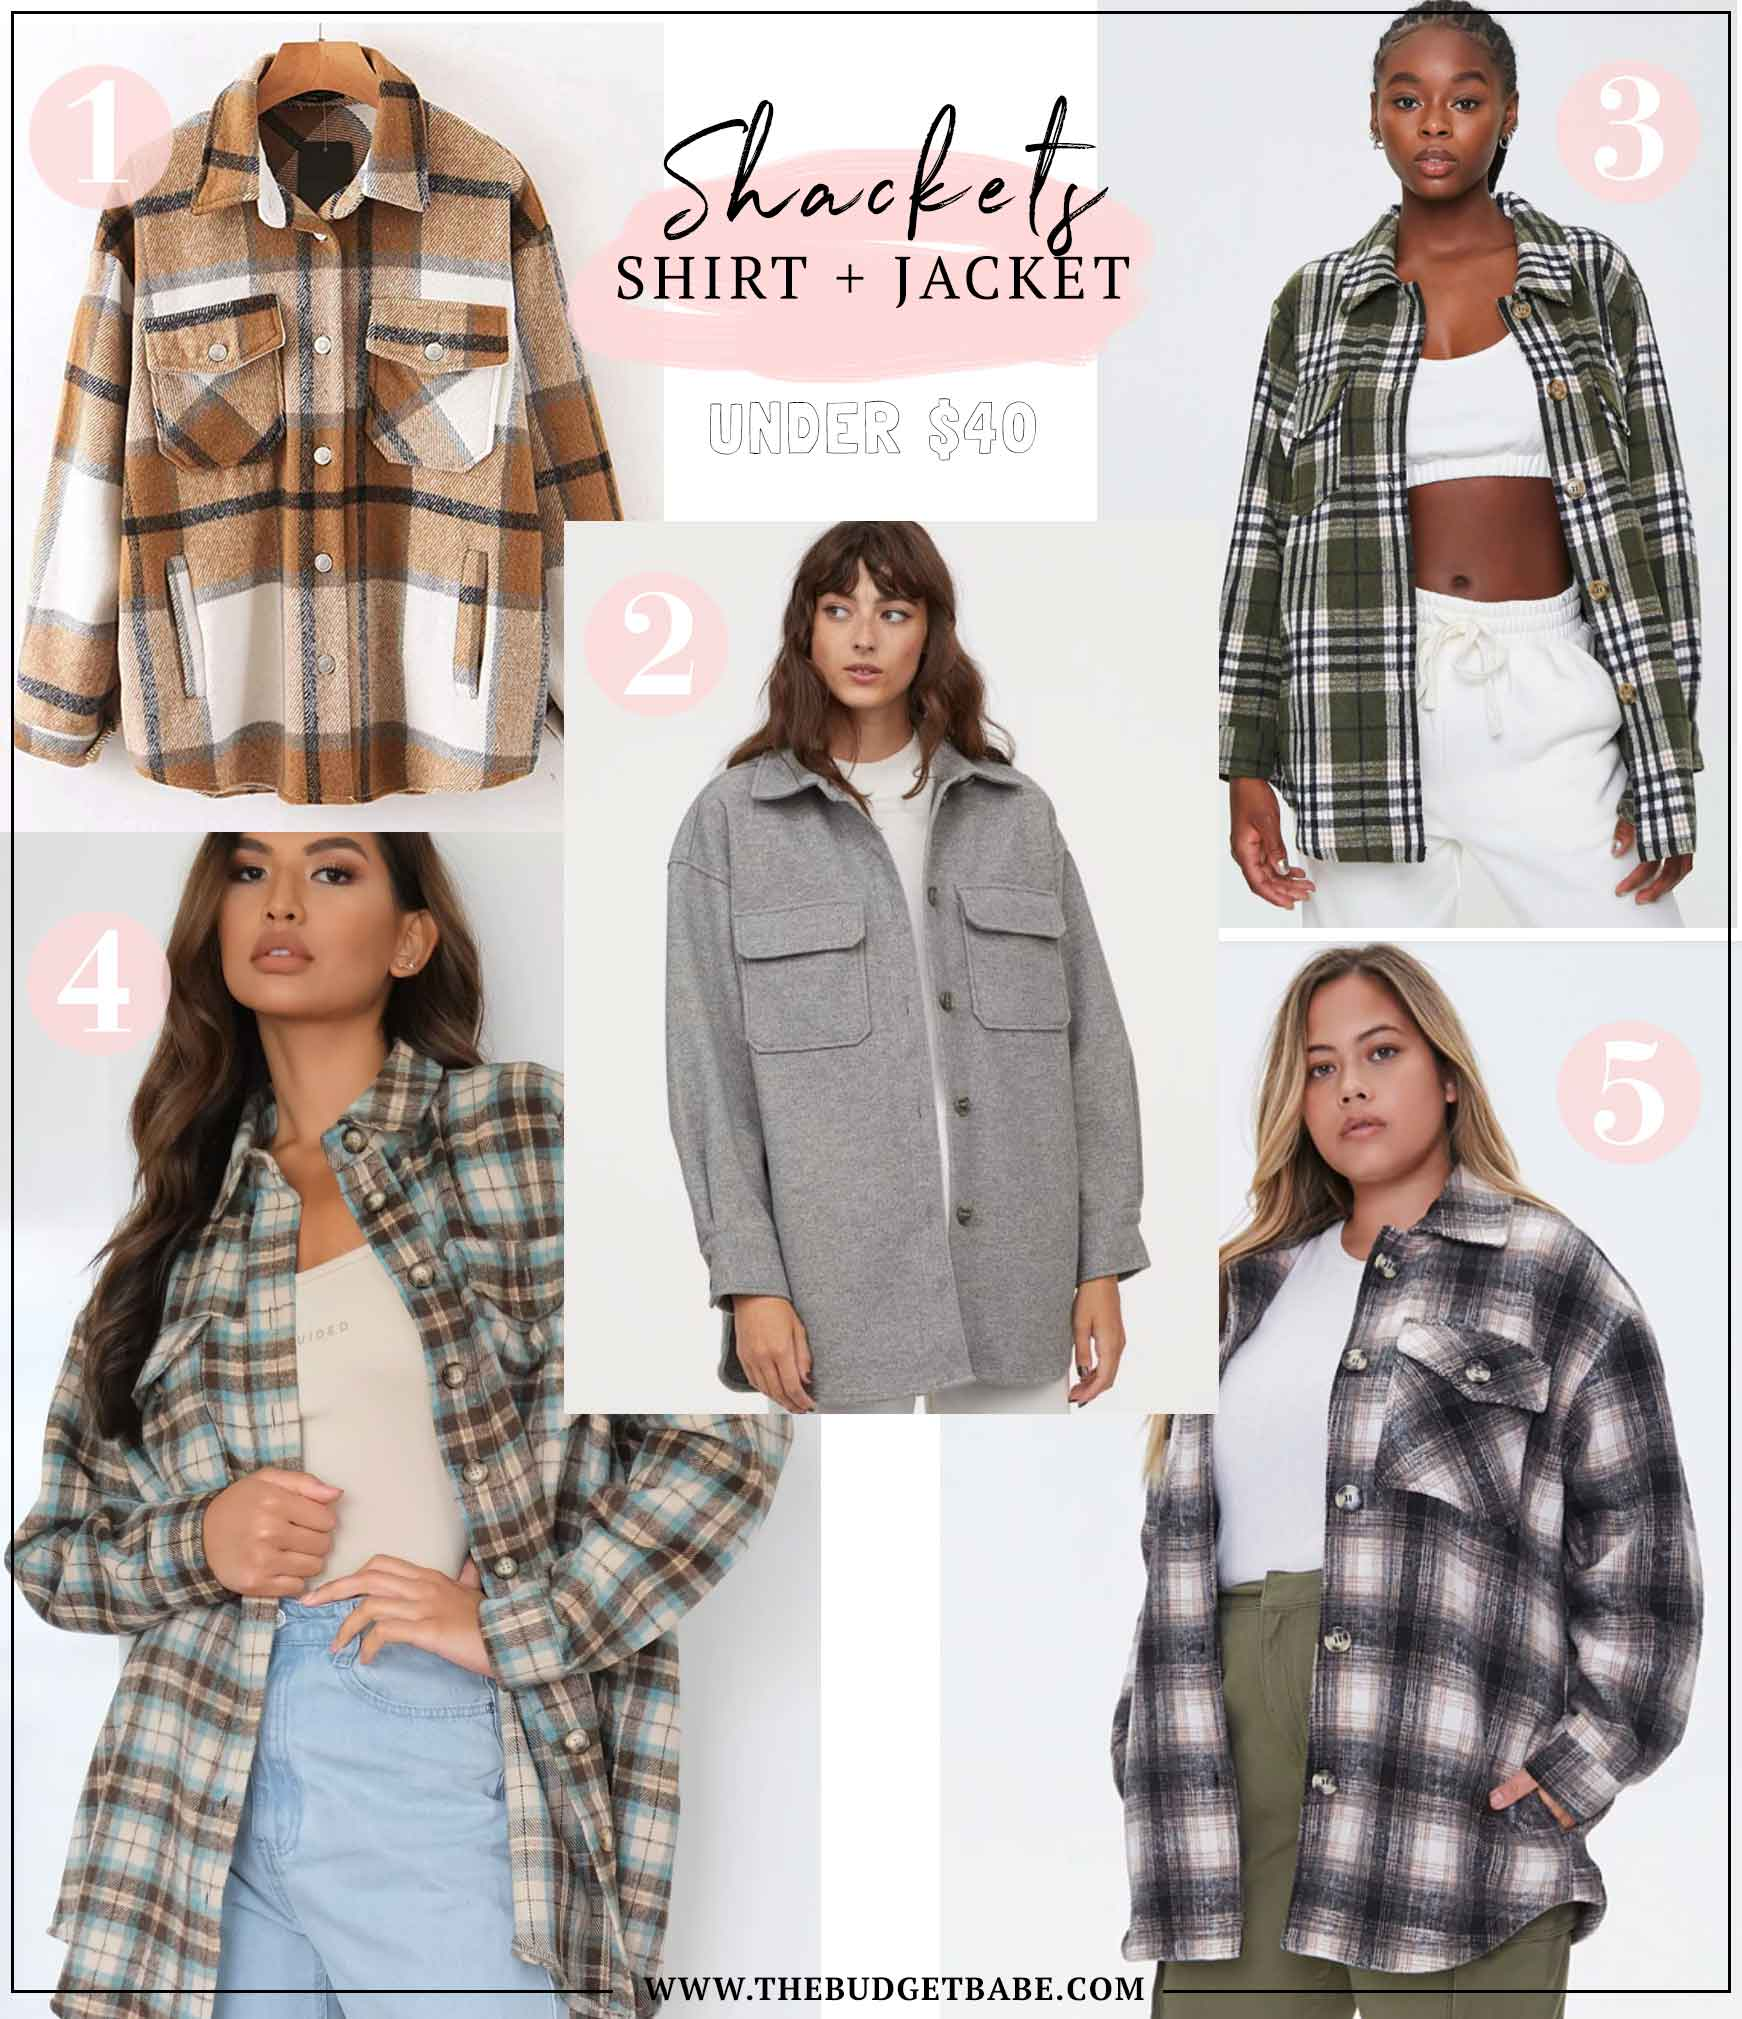 Try the shacket trend! The best of both worlds, under $40